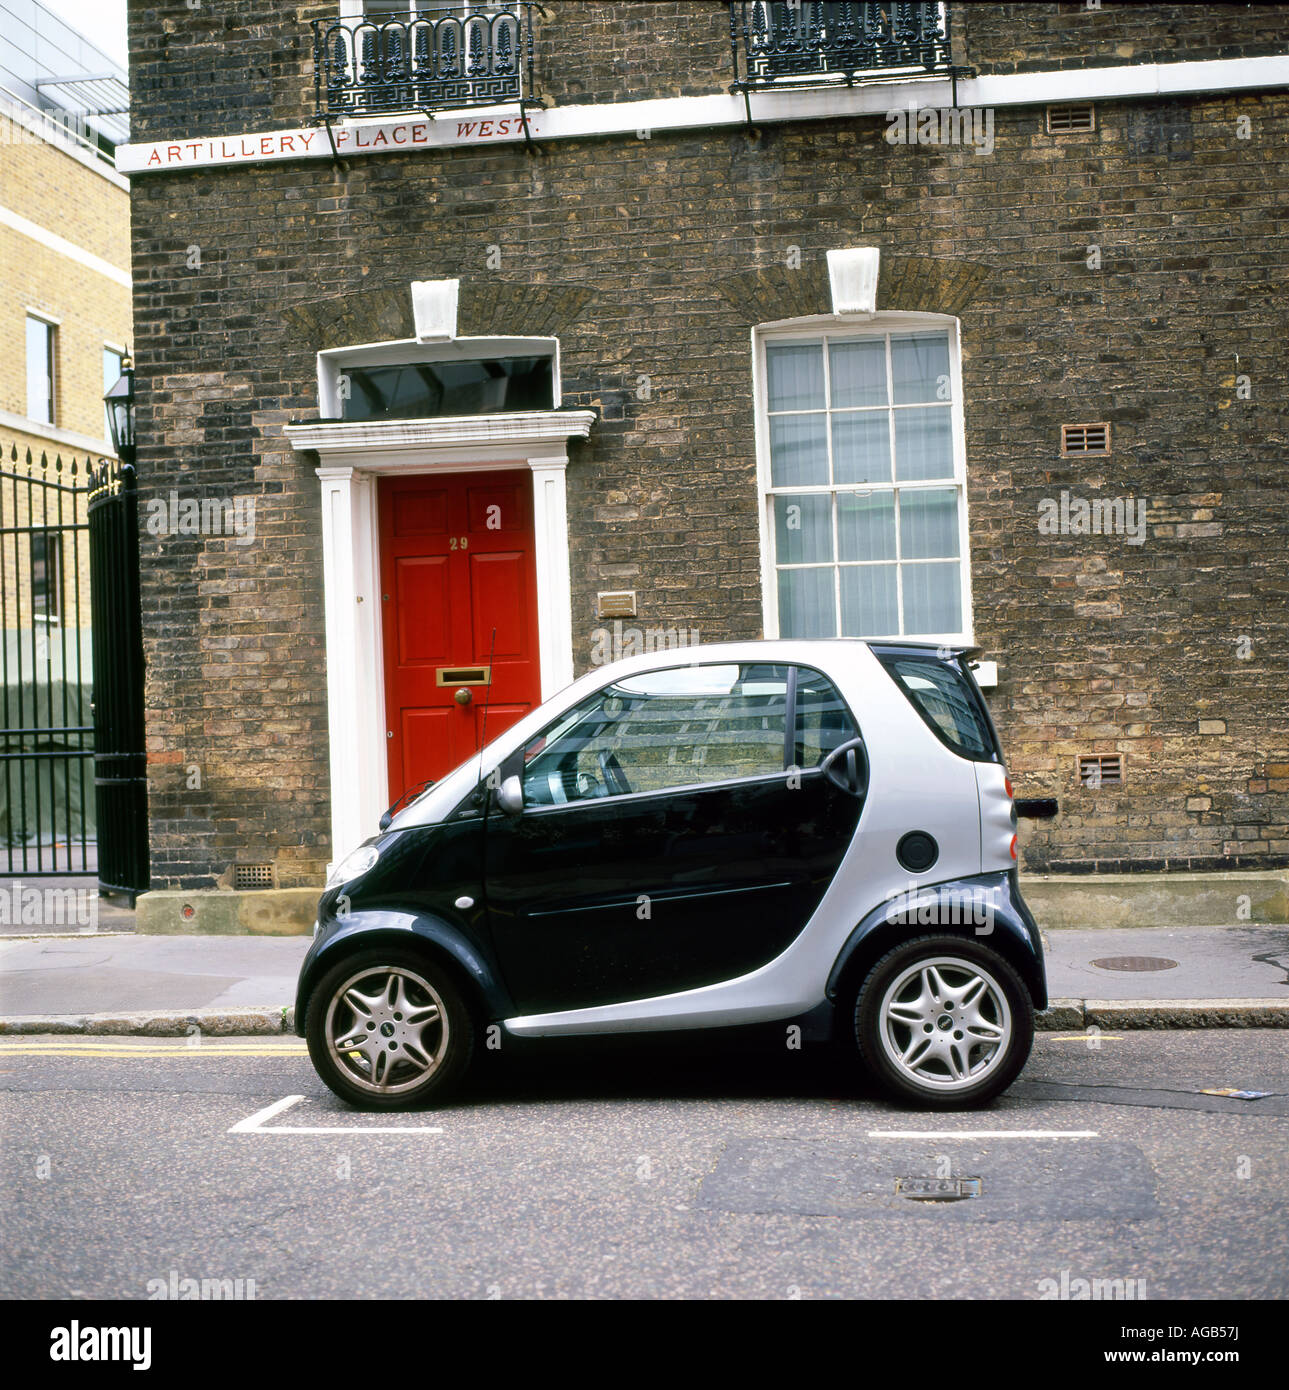 A Smart Car parked outside a stone terraced house with a red door on Artillery Row West, Bunhill Row, Finsbury, Stock Photo